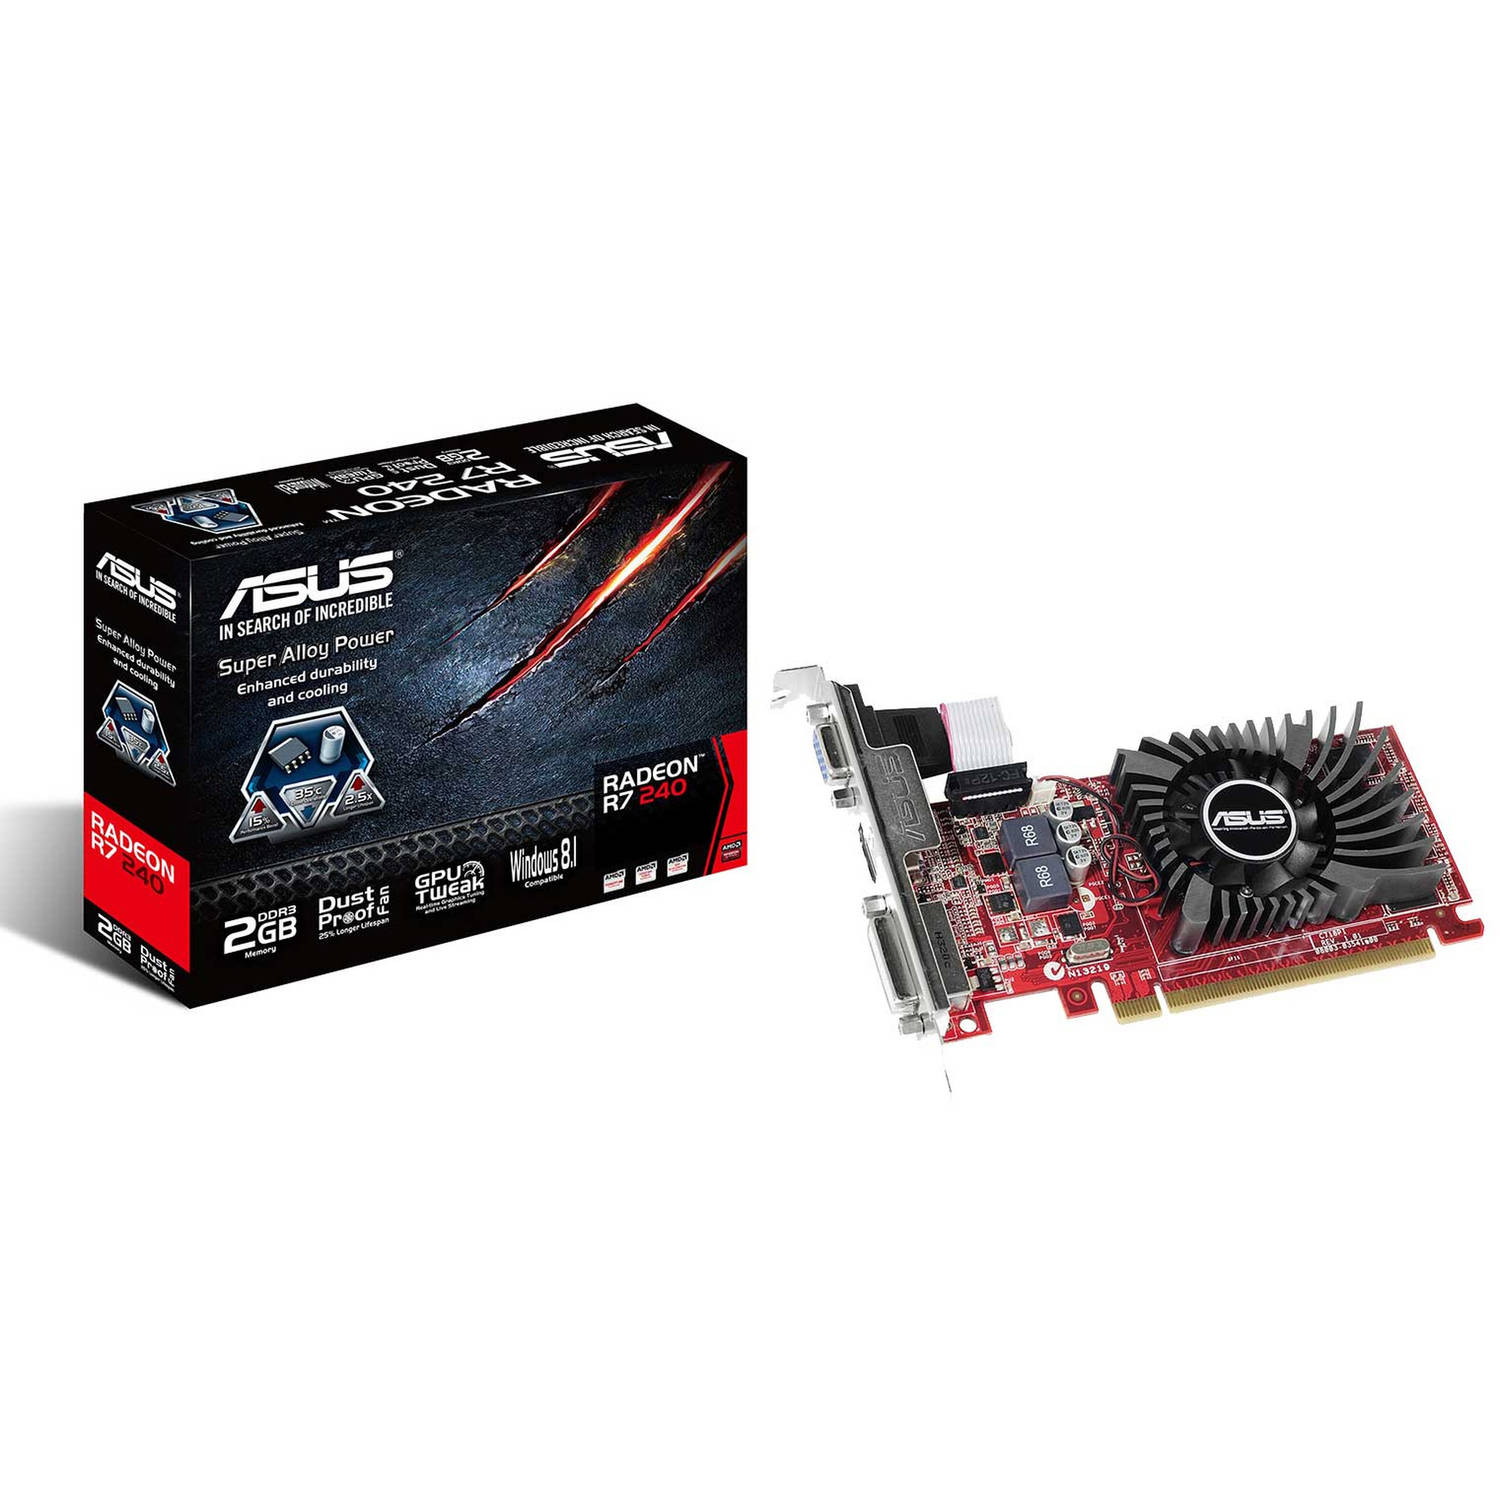 ASUS R7240-2GD3-L TREIBER WINDOWS XP